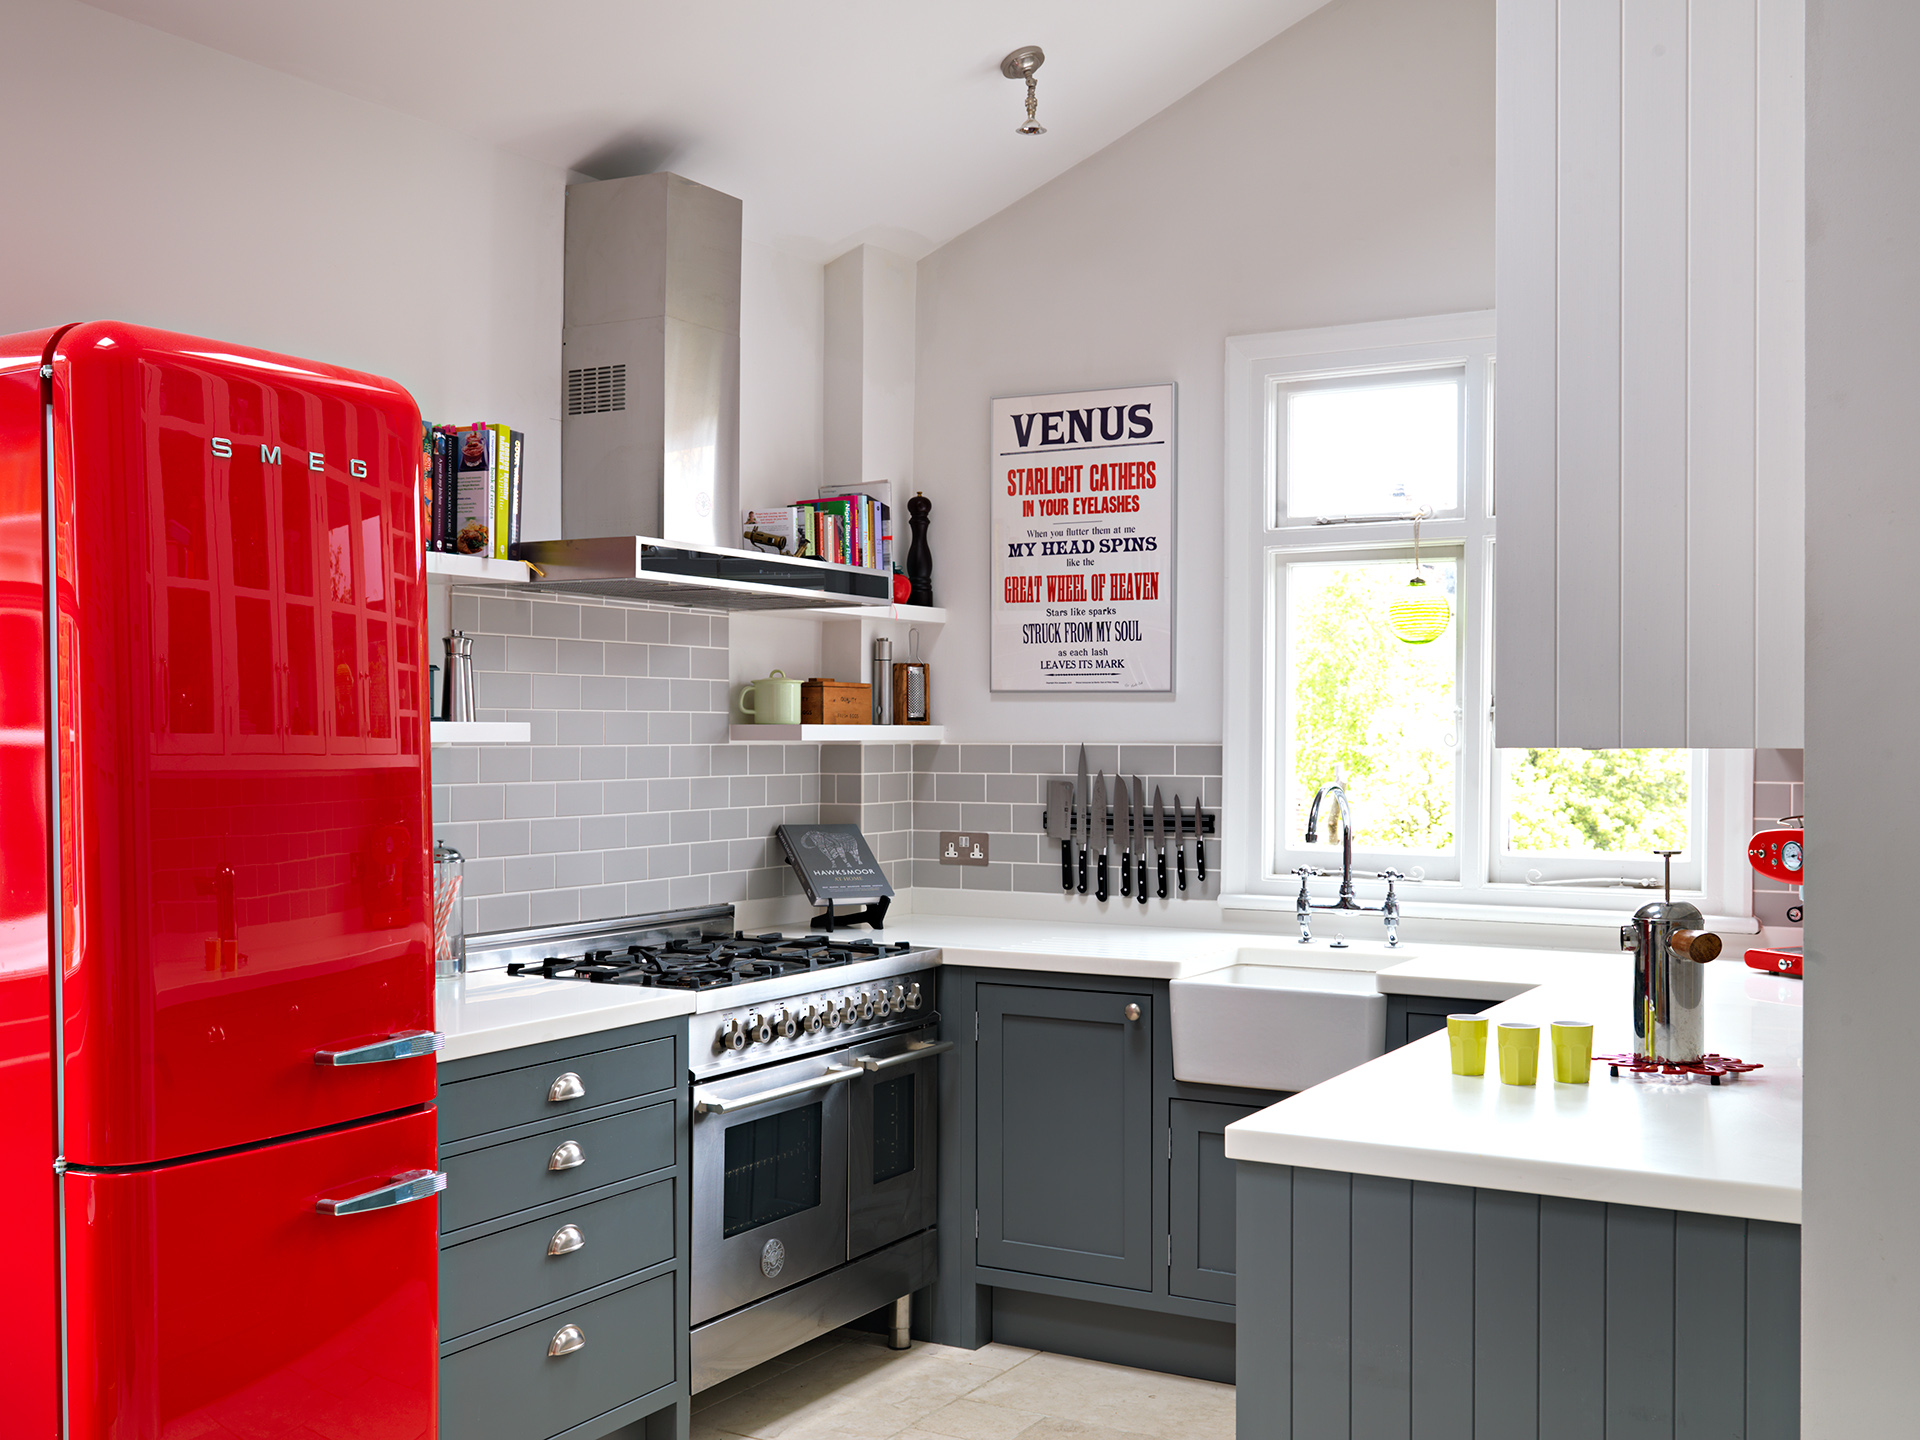 Uncategorized Small Kitchen Designs 50 best small kitchen ideas and designs for 2017 13 a cherry red fridge is the focal point